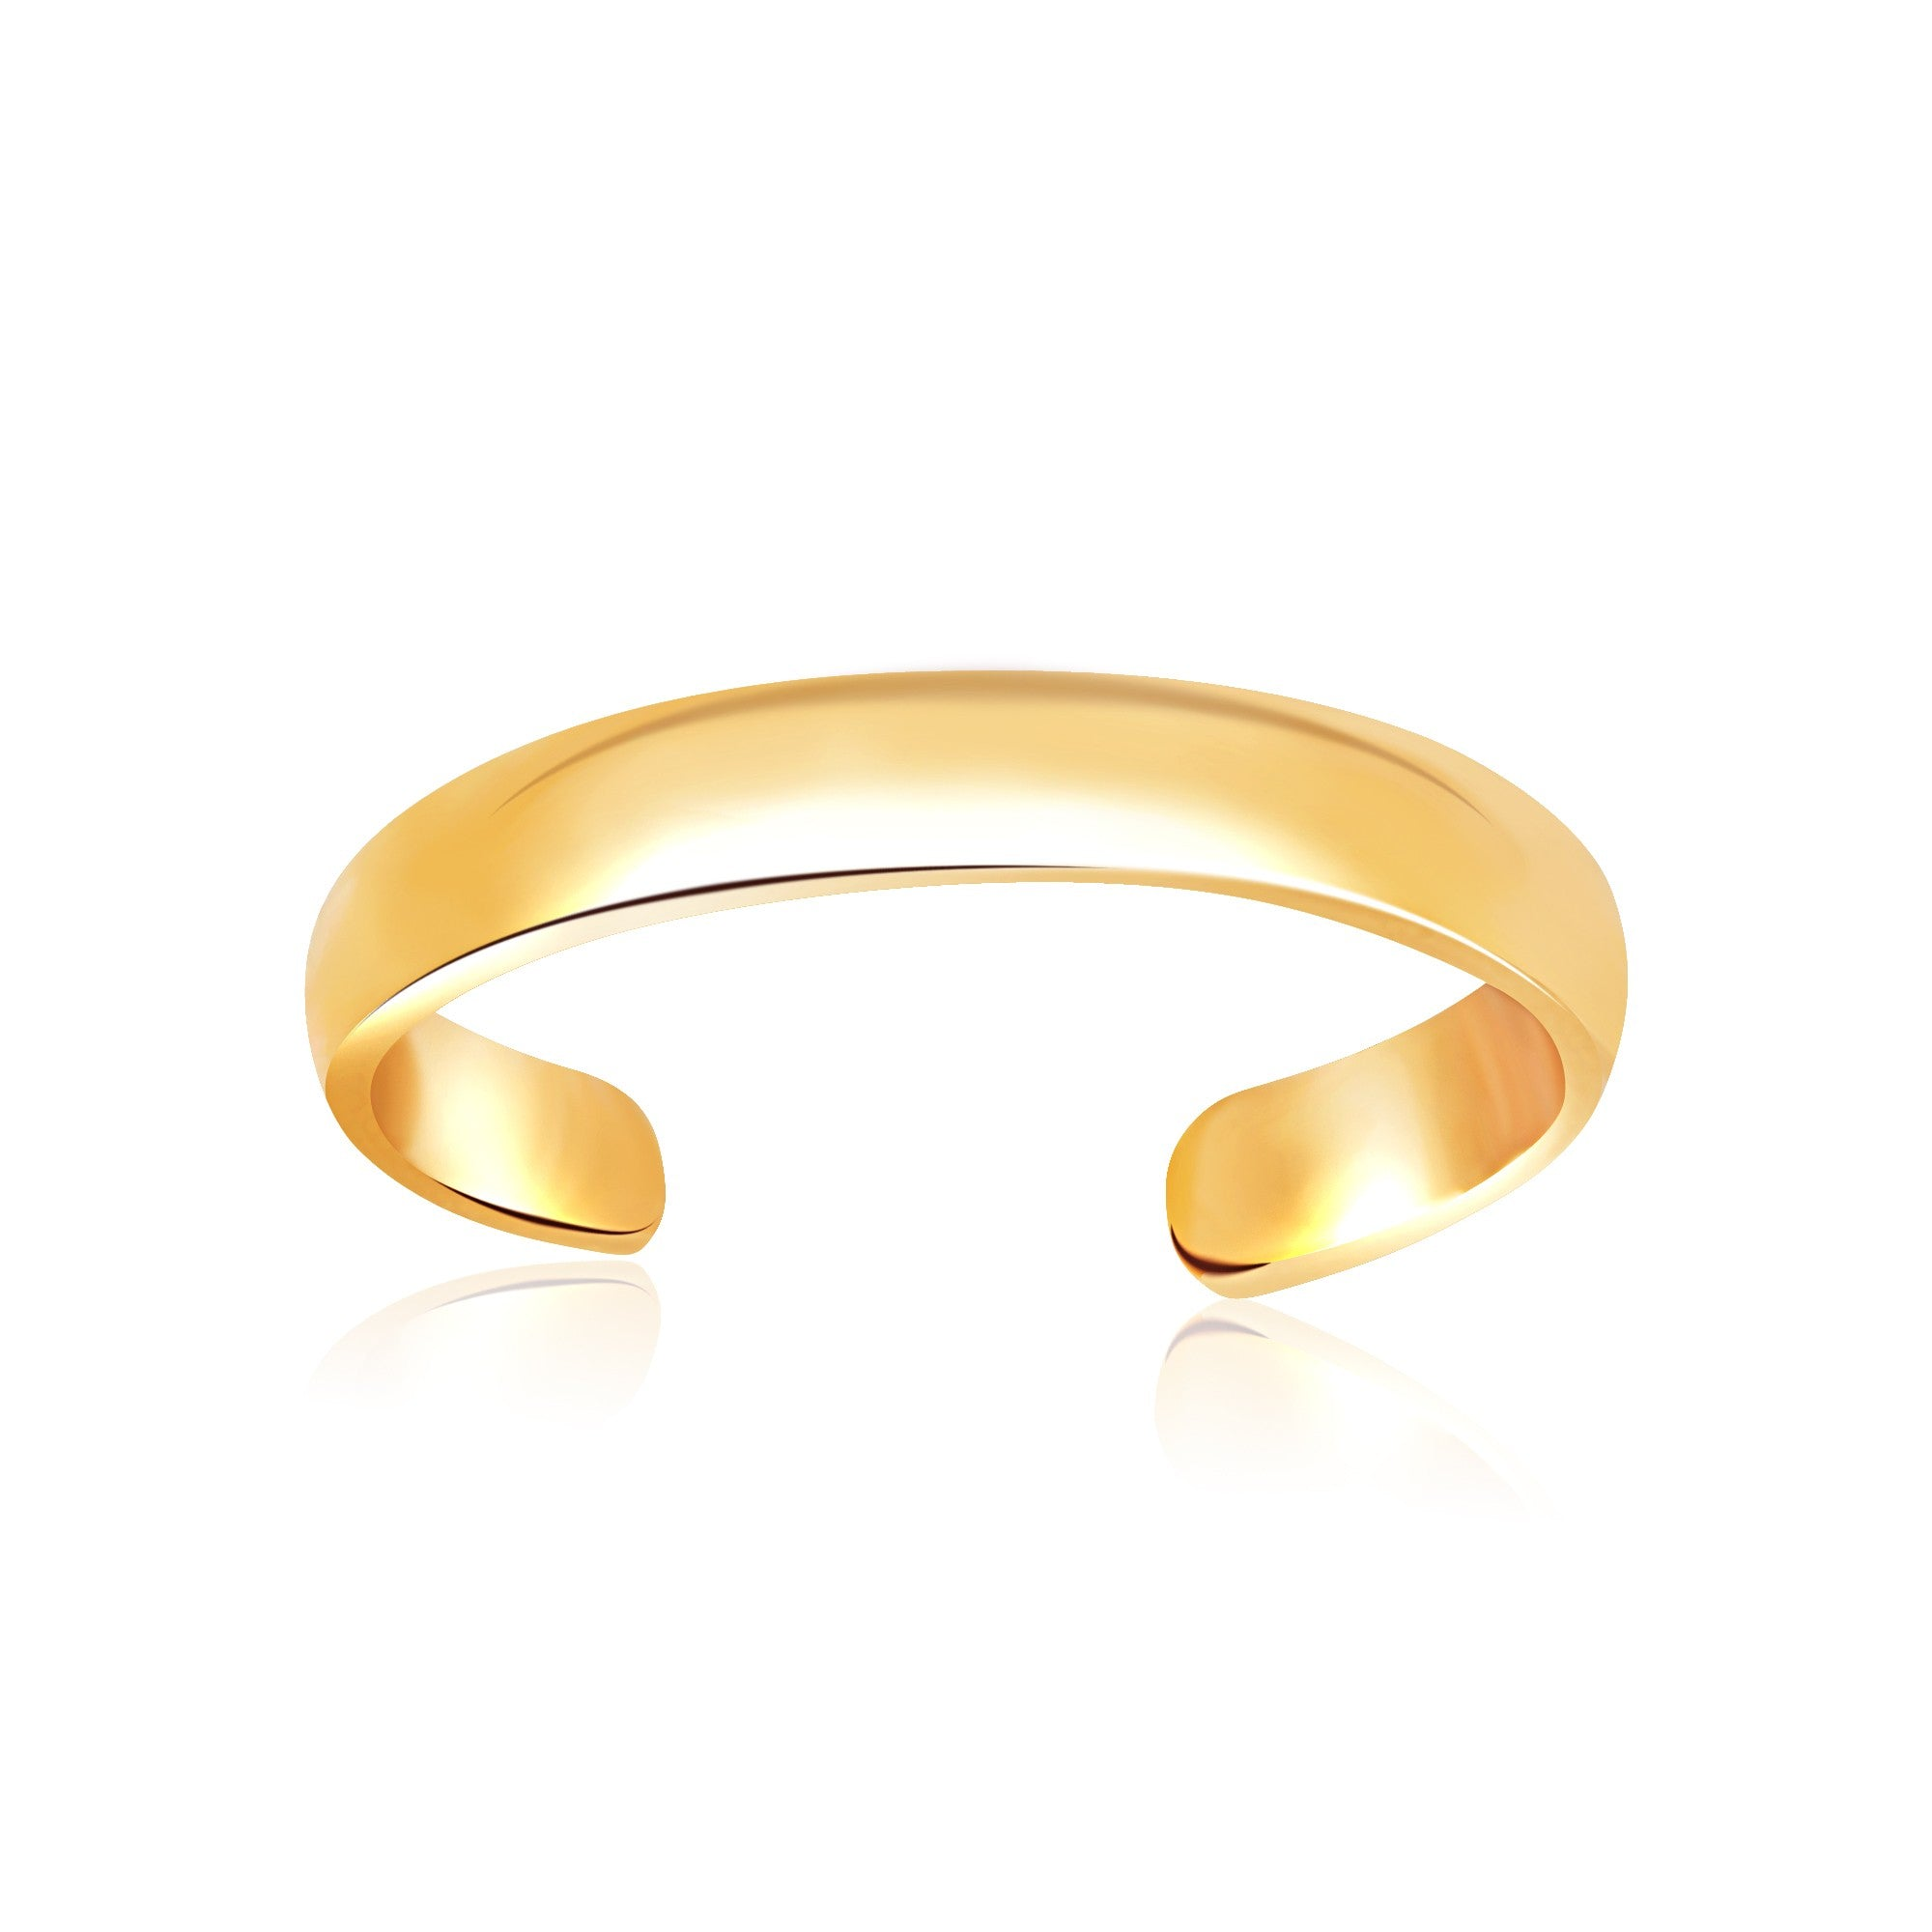 14K Yellow Gold Toe Ring in a Polished and Simple Style - Uniquepedia.com